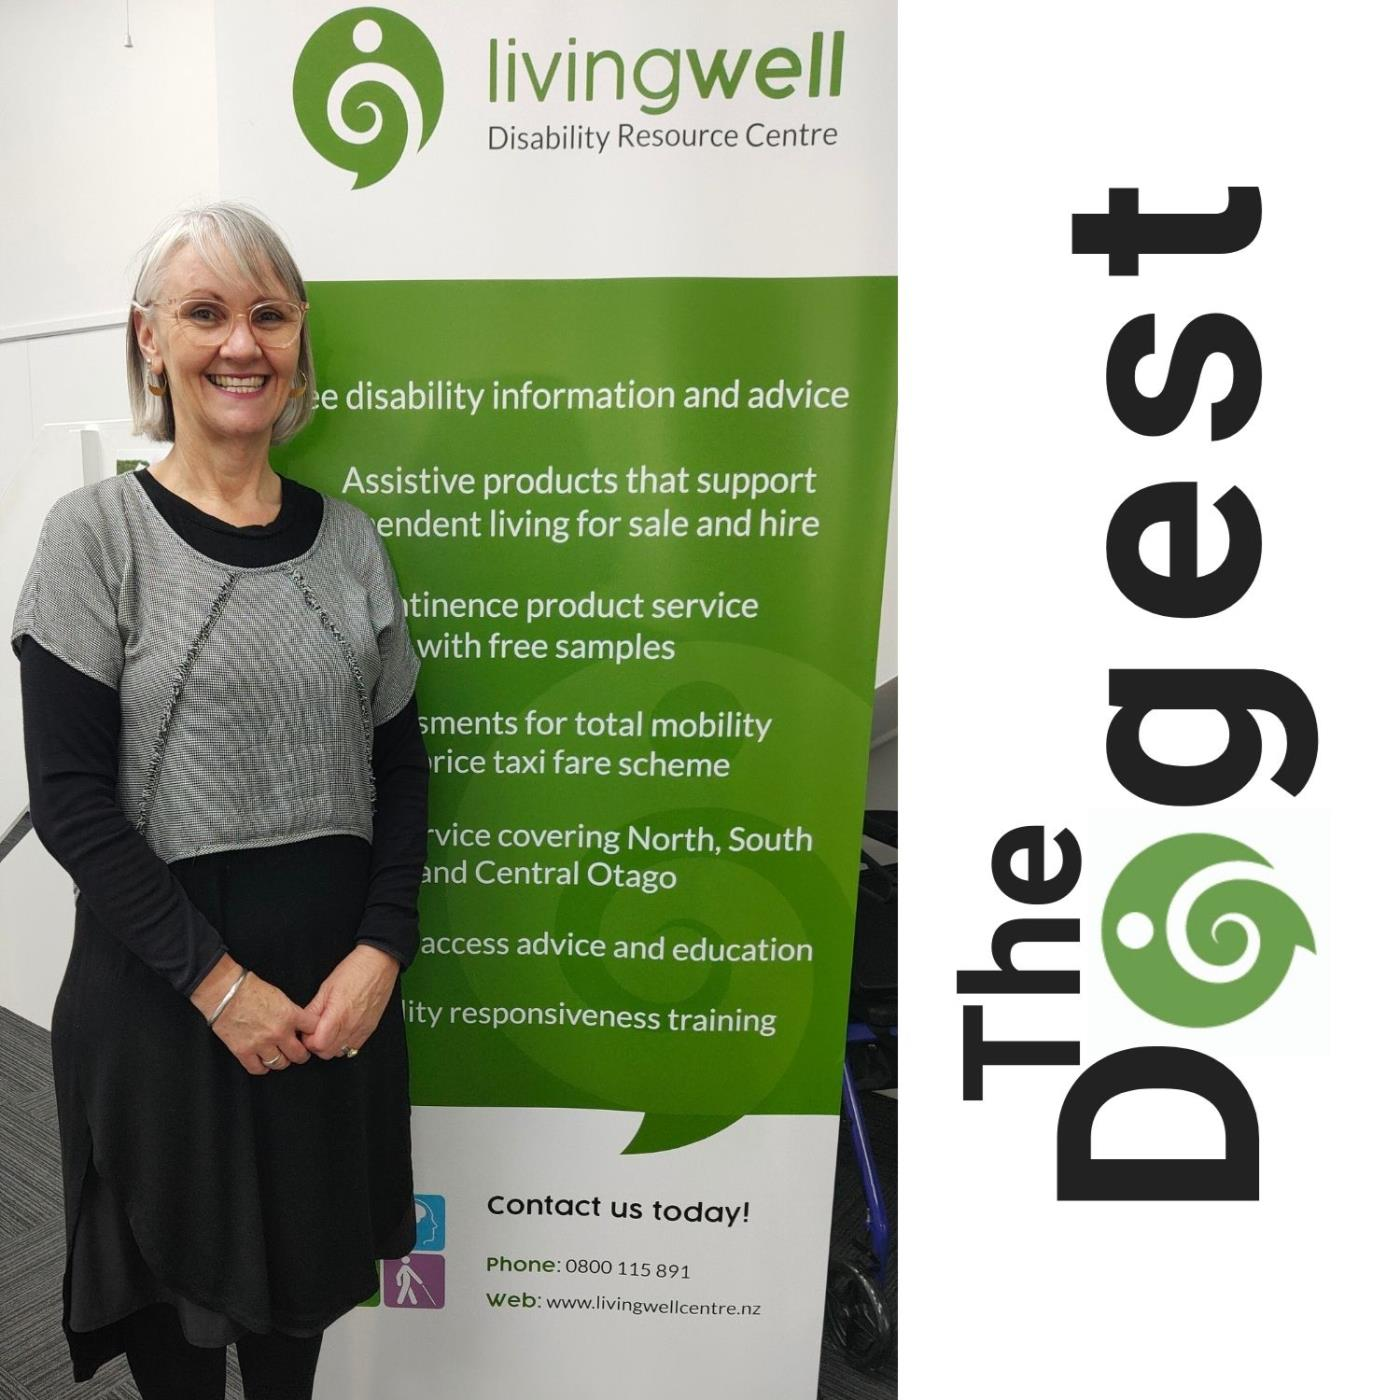 The Digest - 02-08-2021 - Livingwell - Disability Resource Centre